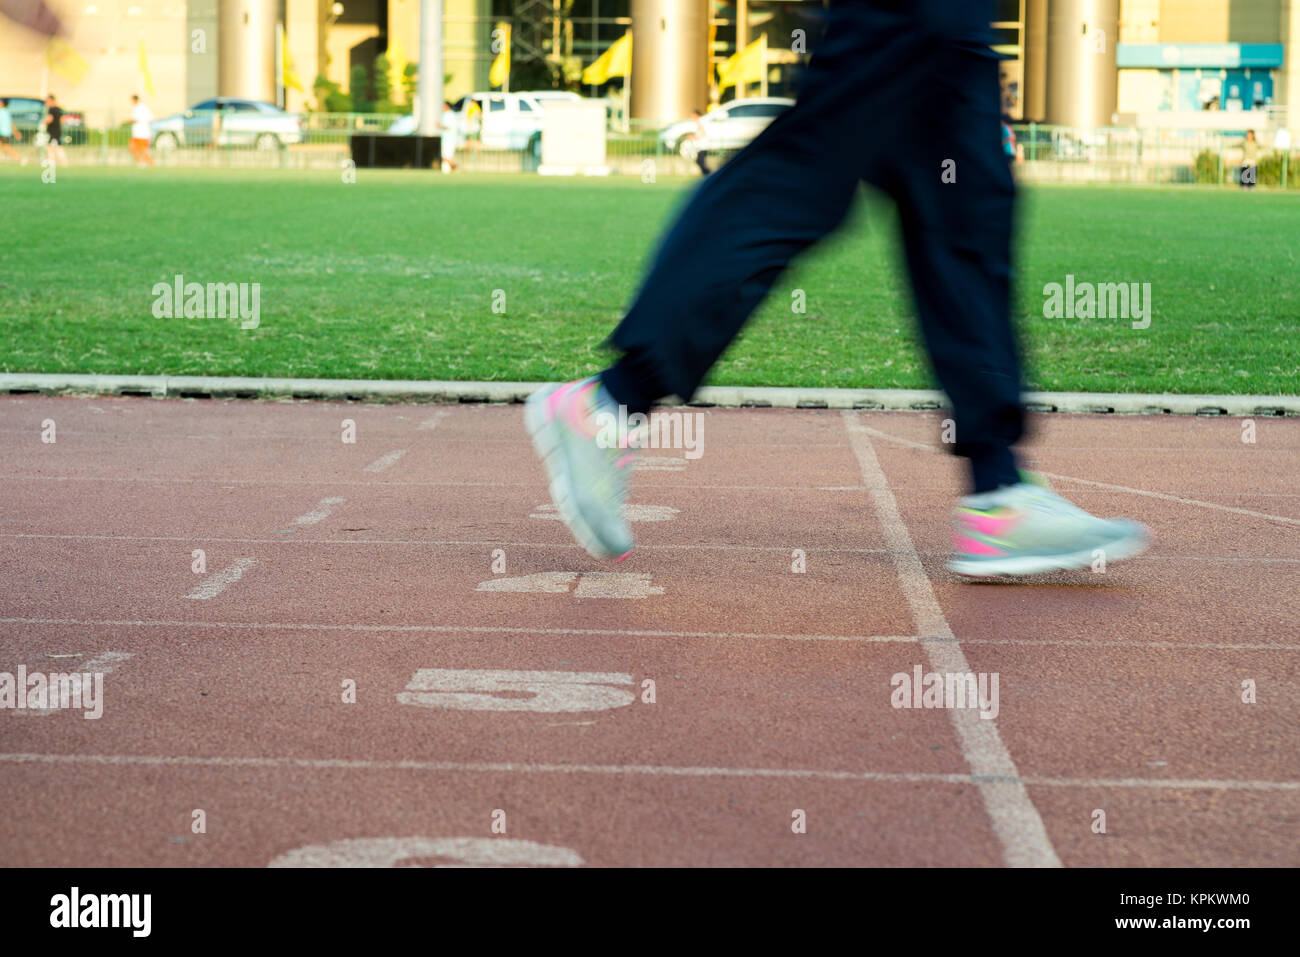 Runners feet in motion on track - Stock Image